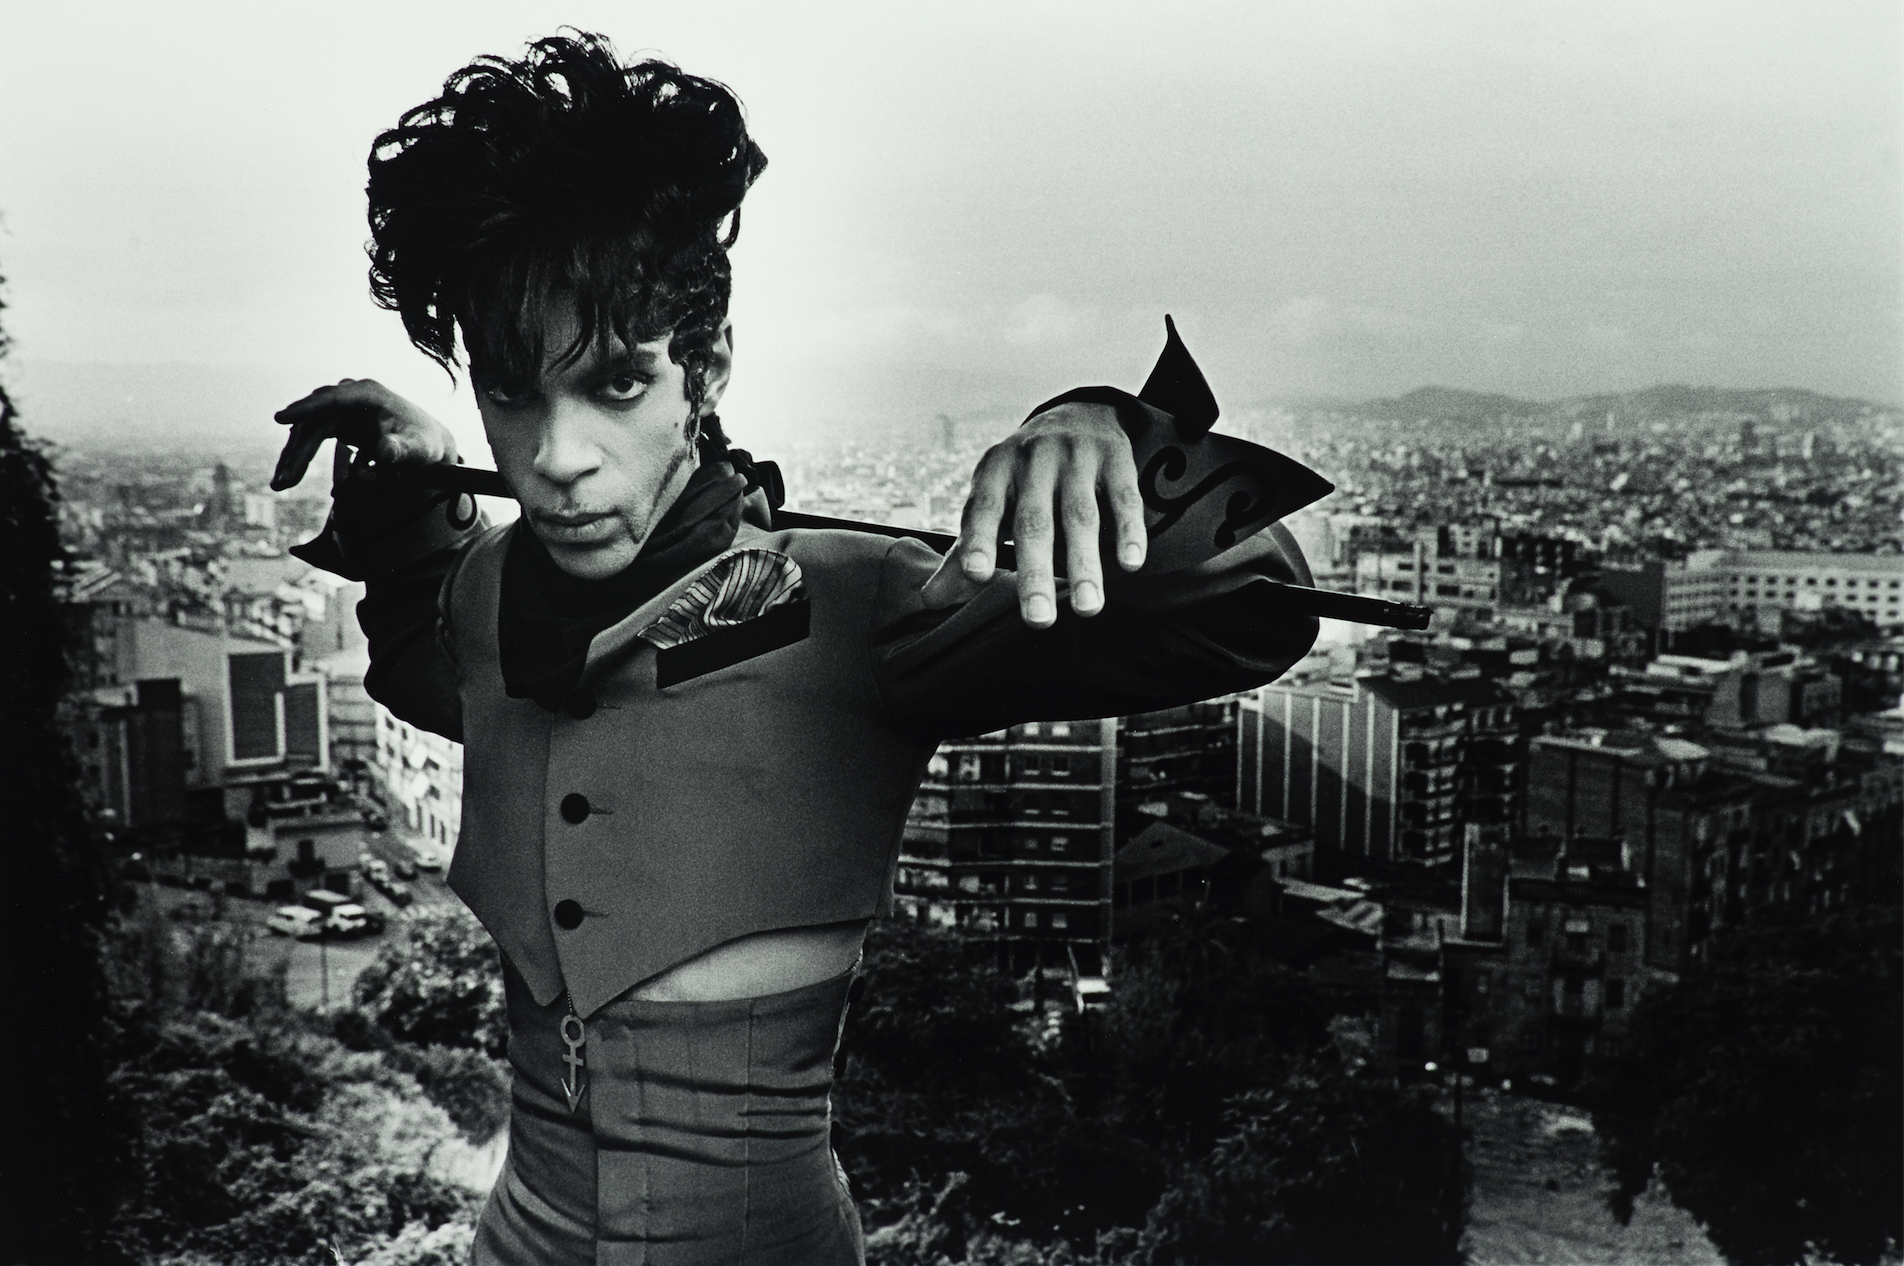 Purple rain: Exhibition on Prince's image coming to MoPOP in April